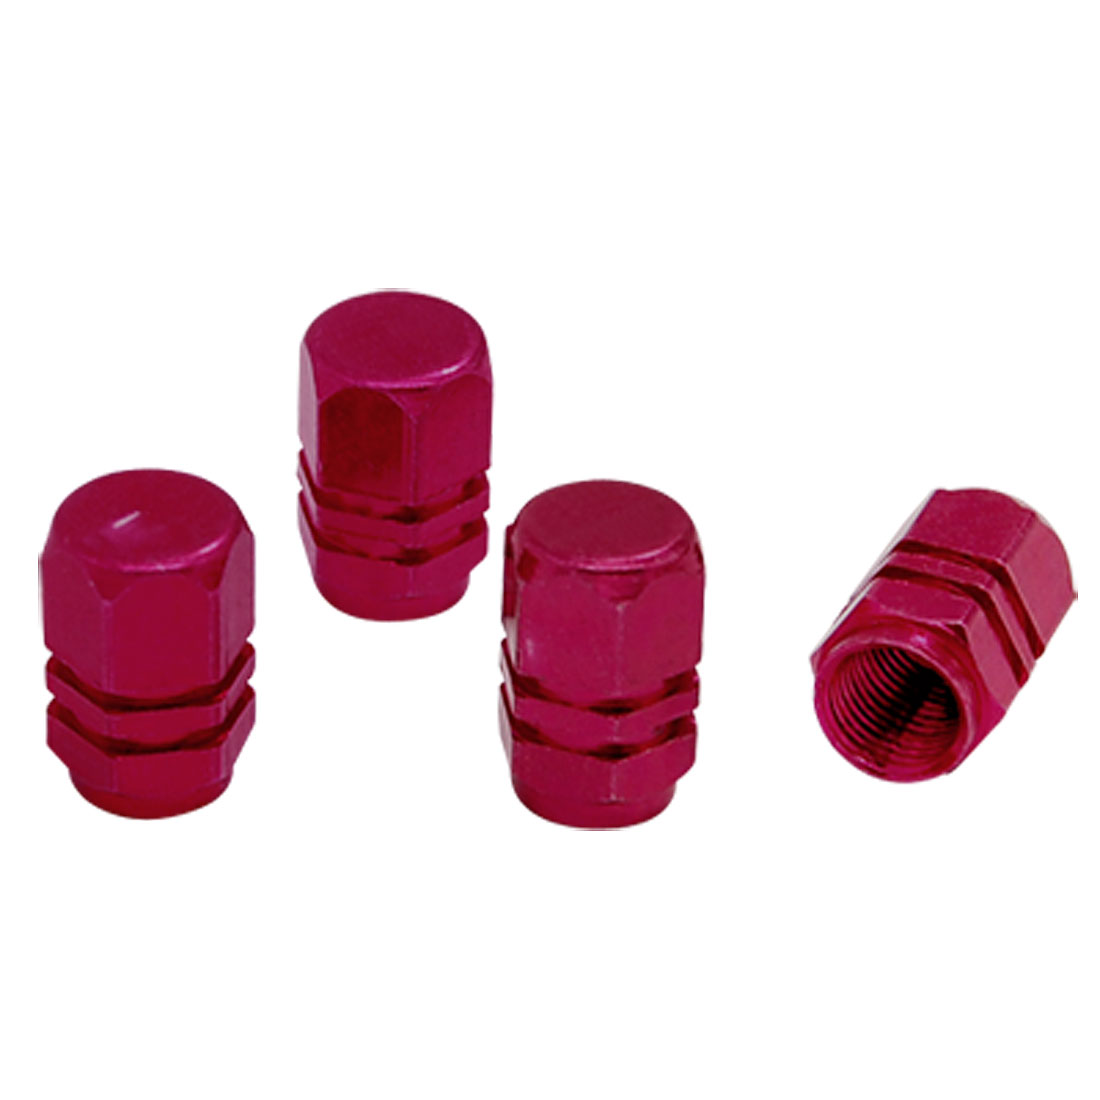 4 pcs Tire Tyre Valves Stems Caps Covers Red